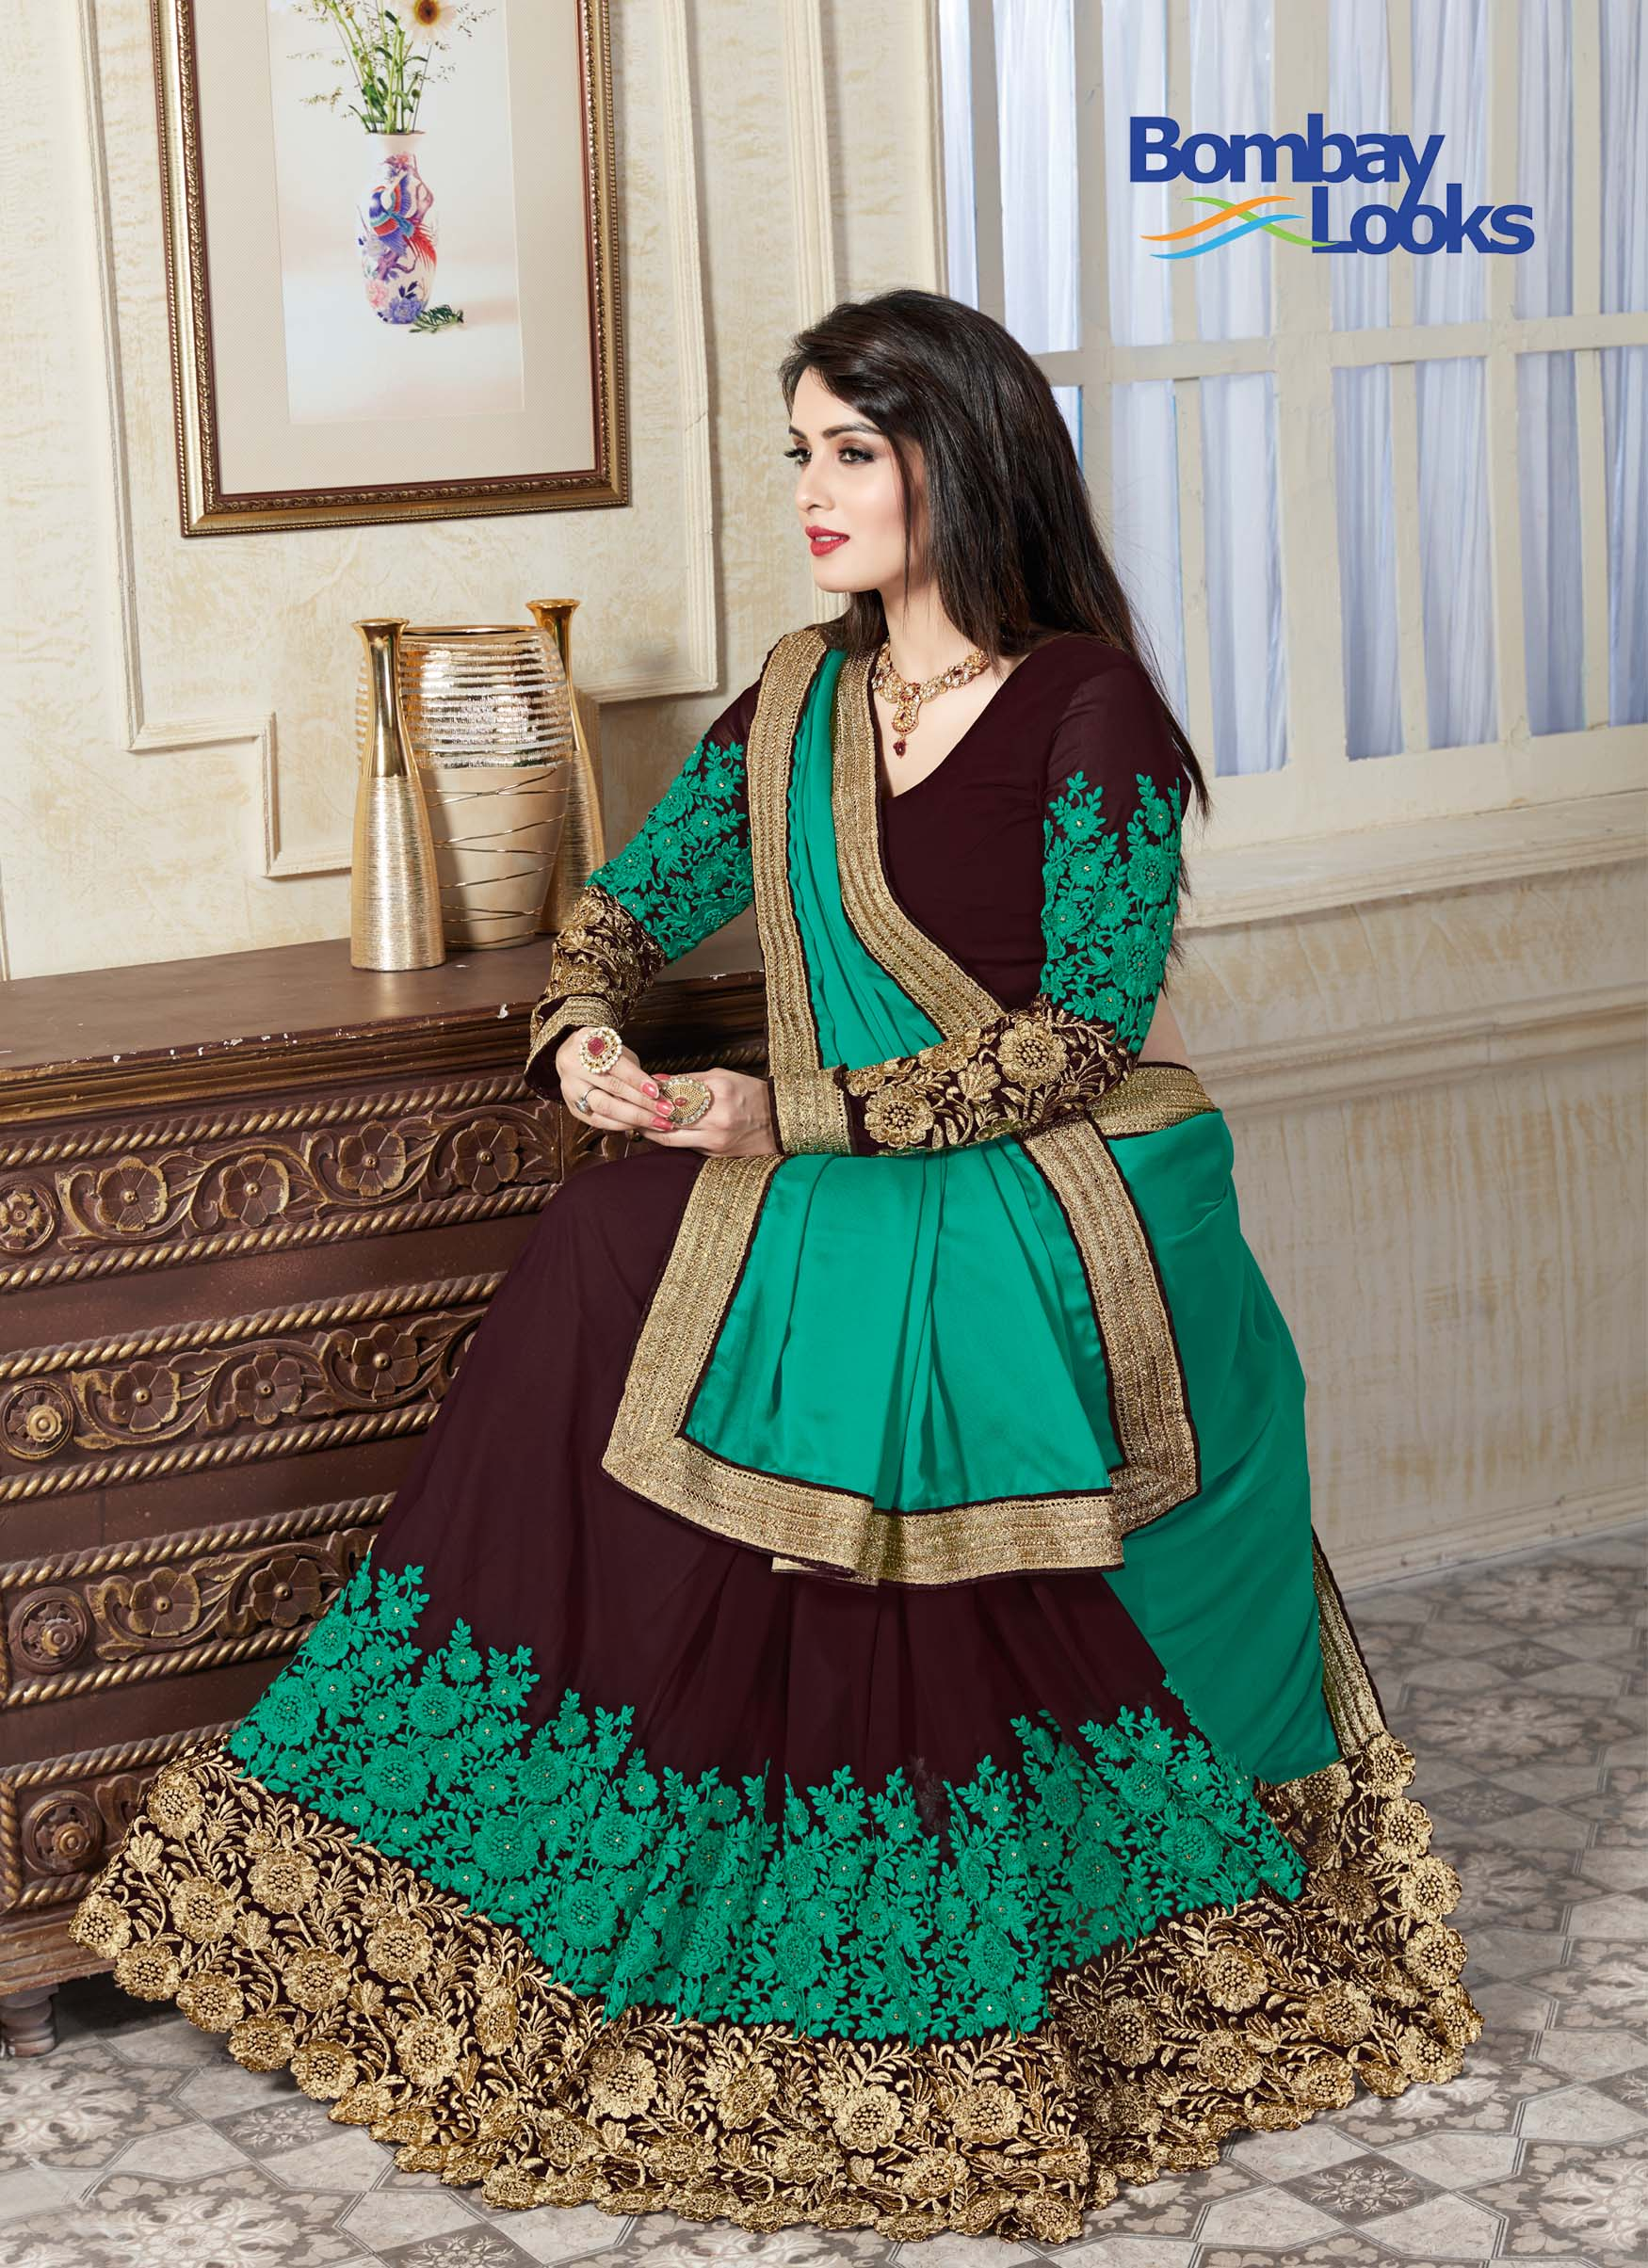 Stunning  embroidered half anf half saree in golden, green and brown and embroidered sleeves